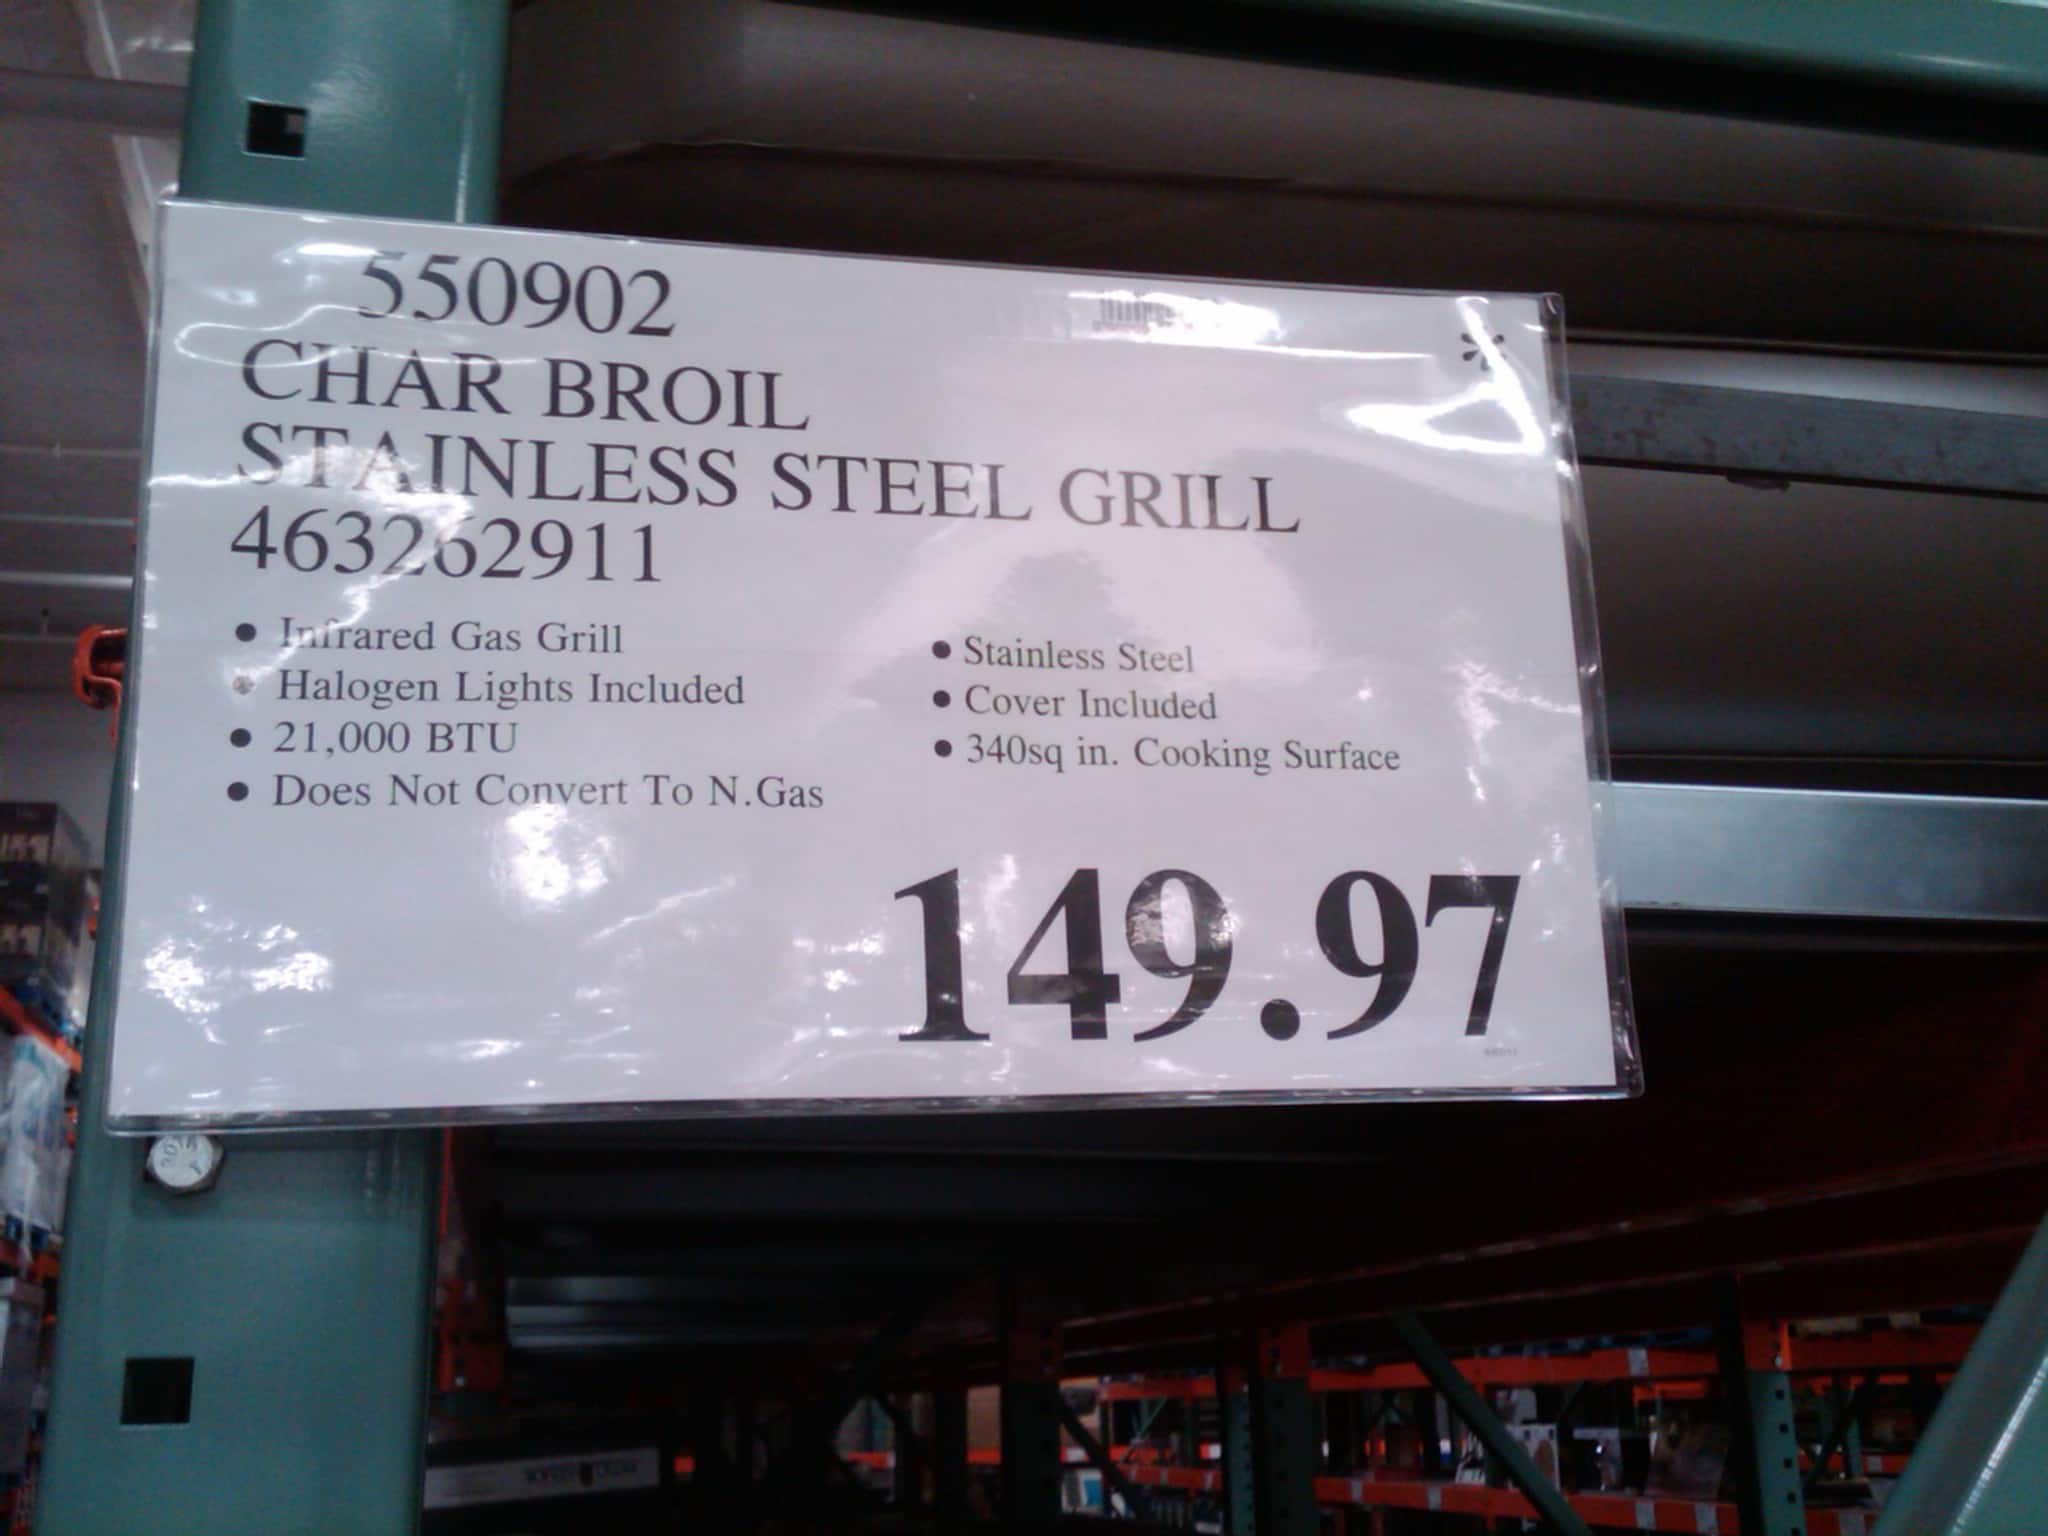 Char Broil Stainless Steel Infrared Gas Grill $149.97 @ Costco YMMV